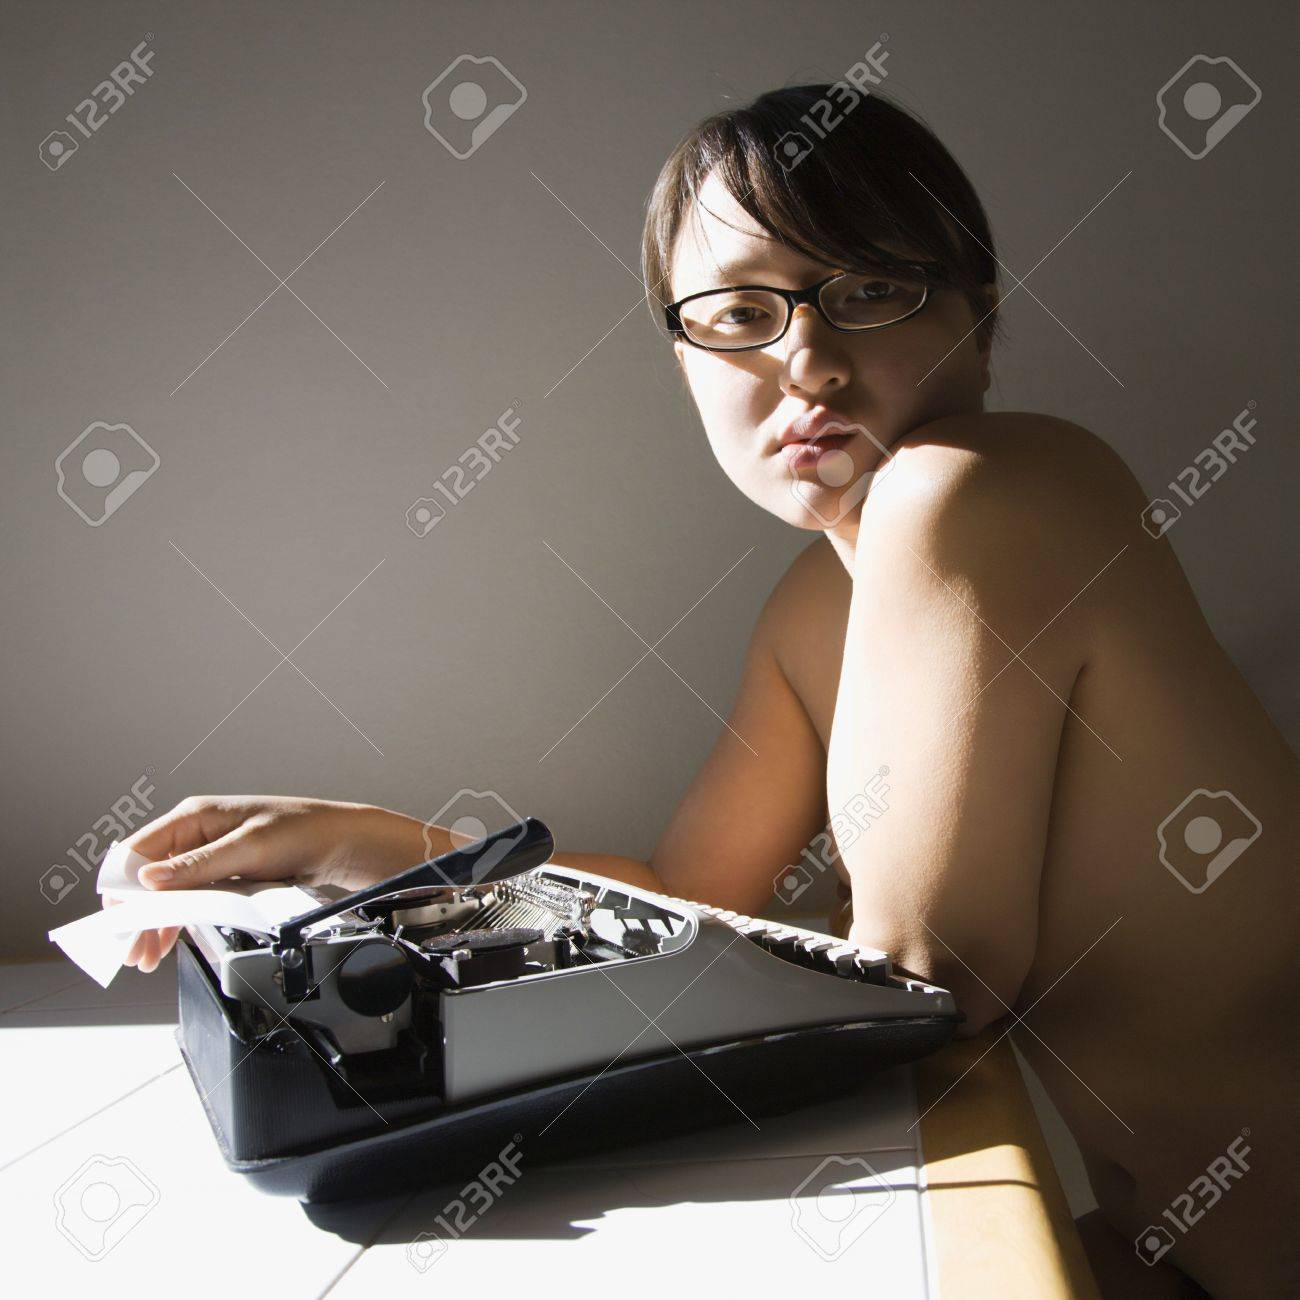 Pretty  young Asian woman sitting at kitchen table with typewriter. Stock Photo - 2205265